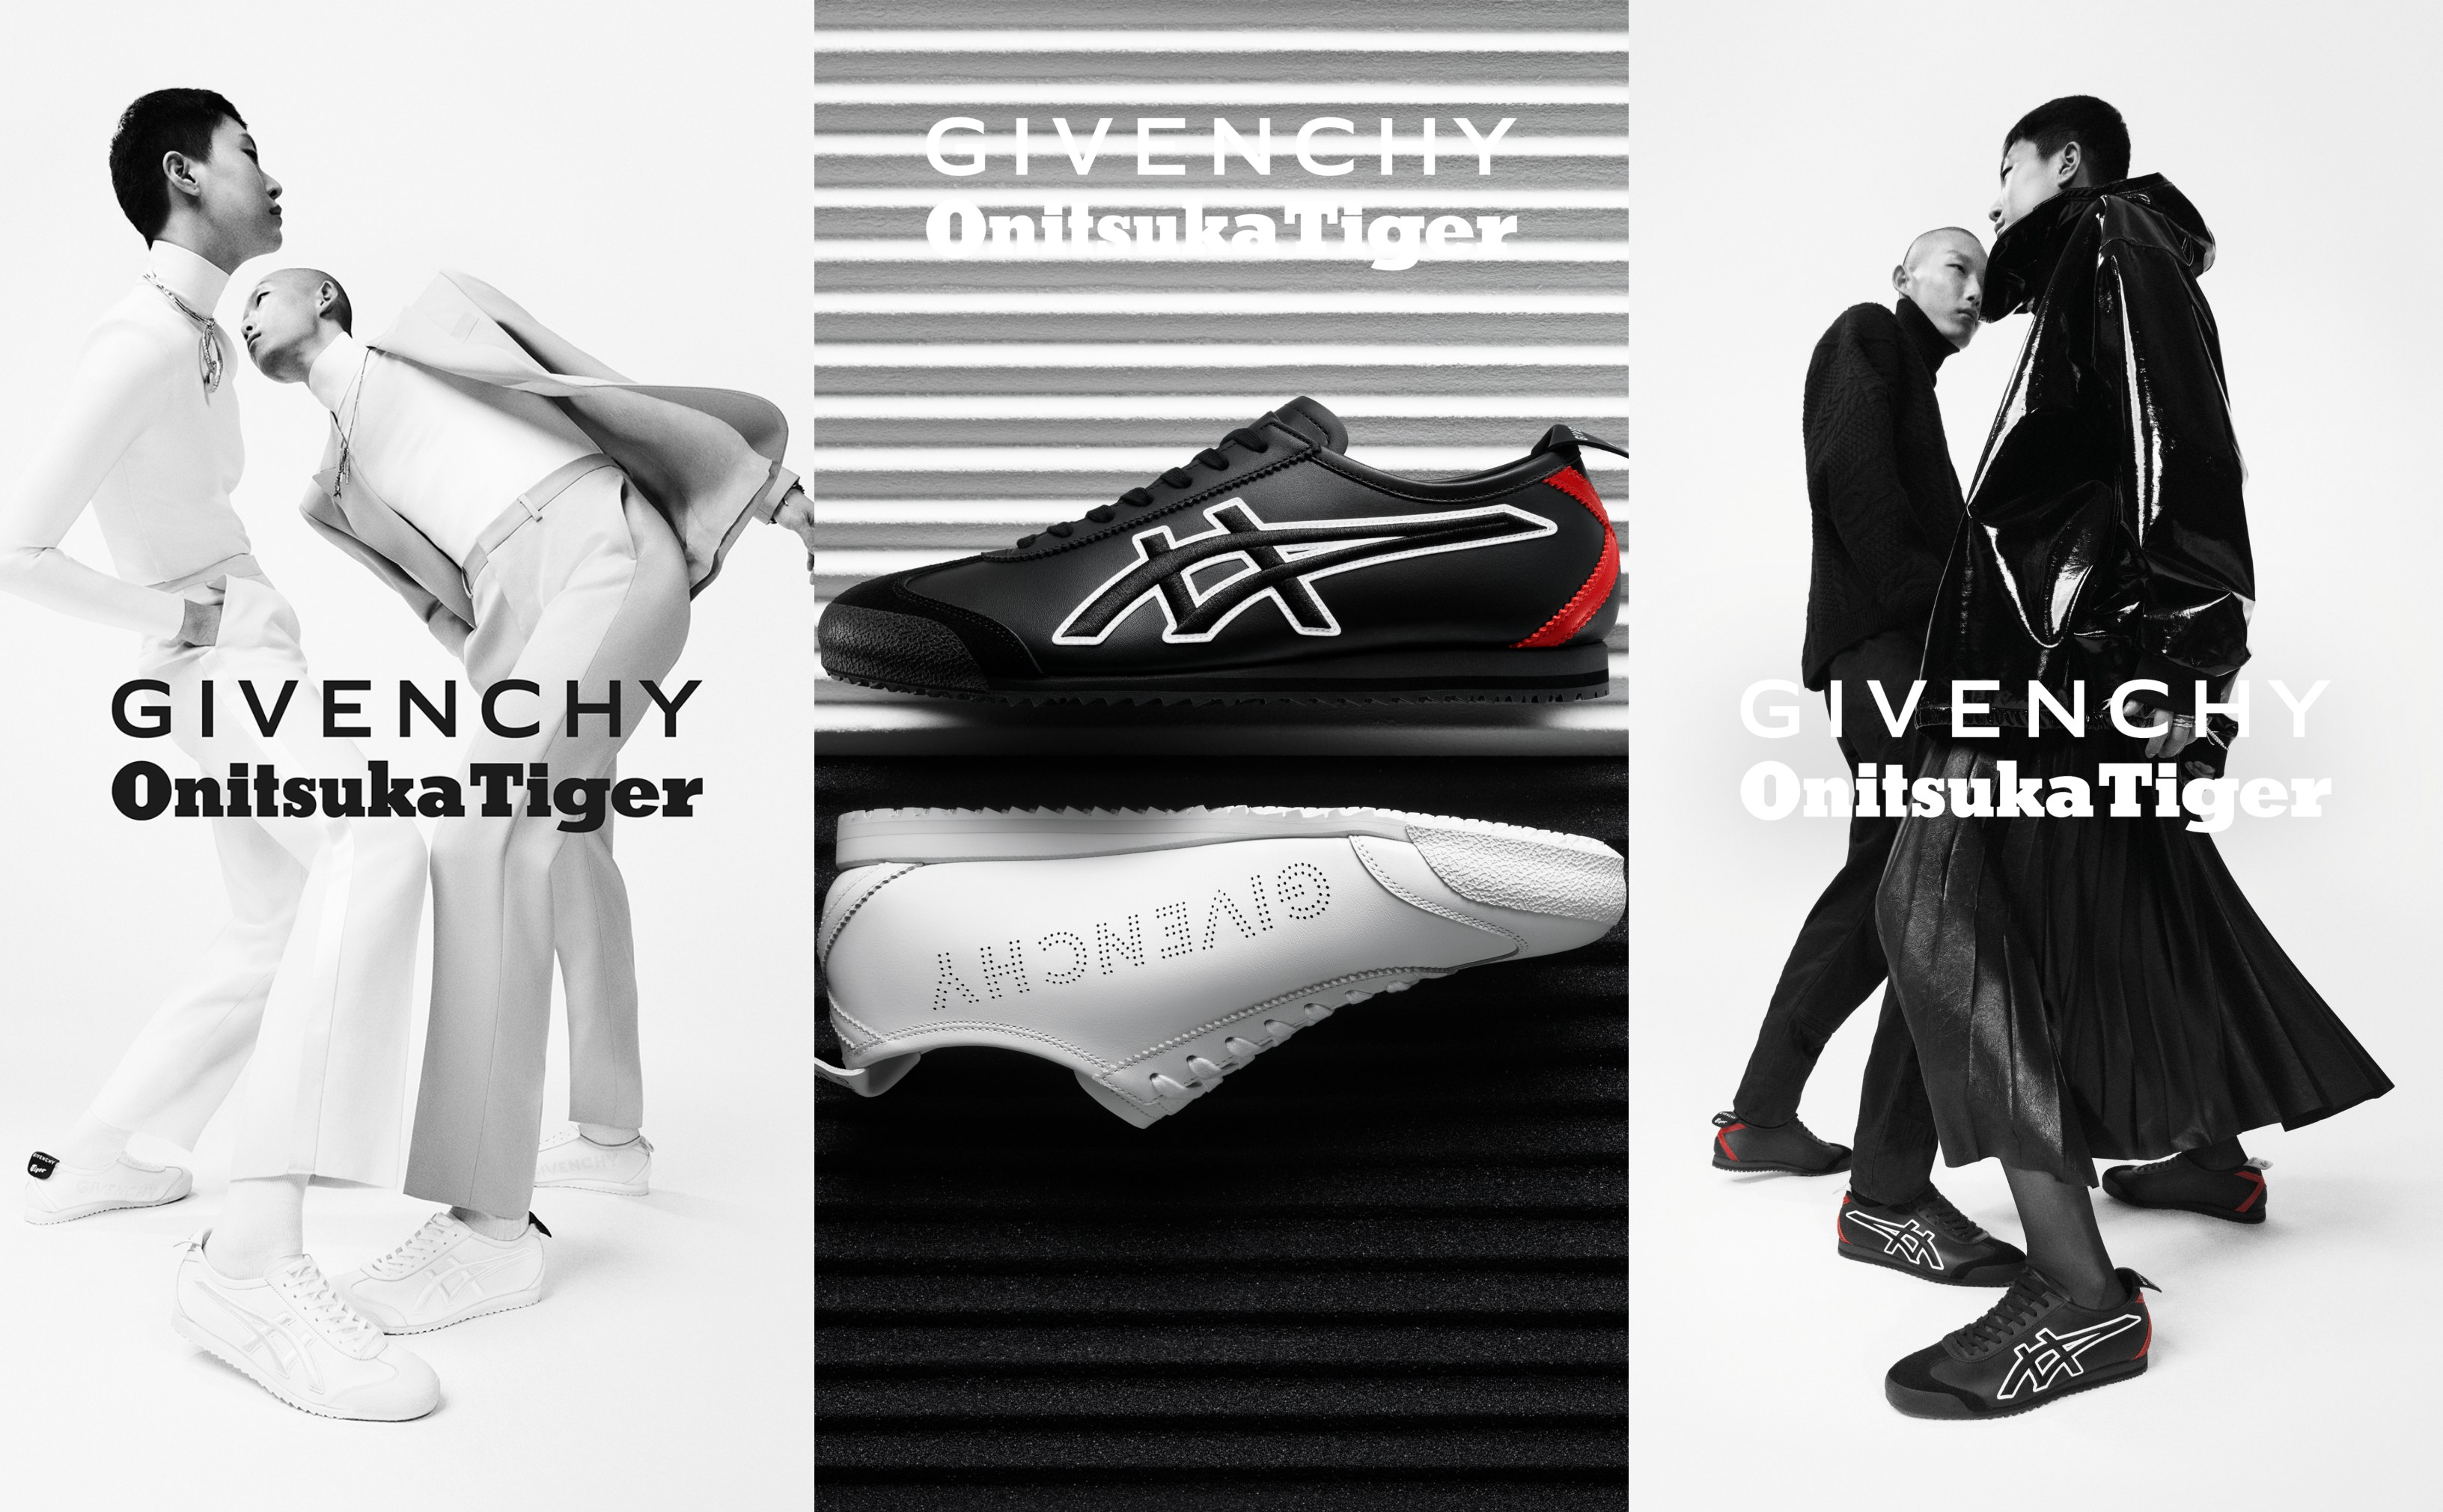 Givenchy and Onitsuka Tiger's surprise